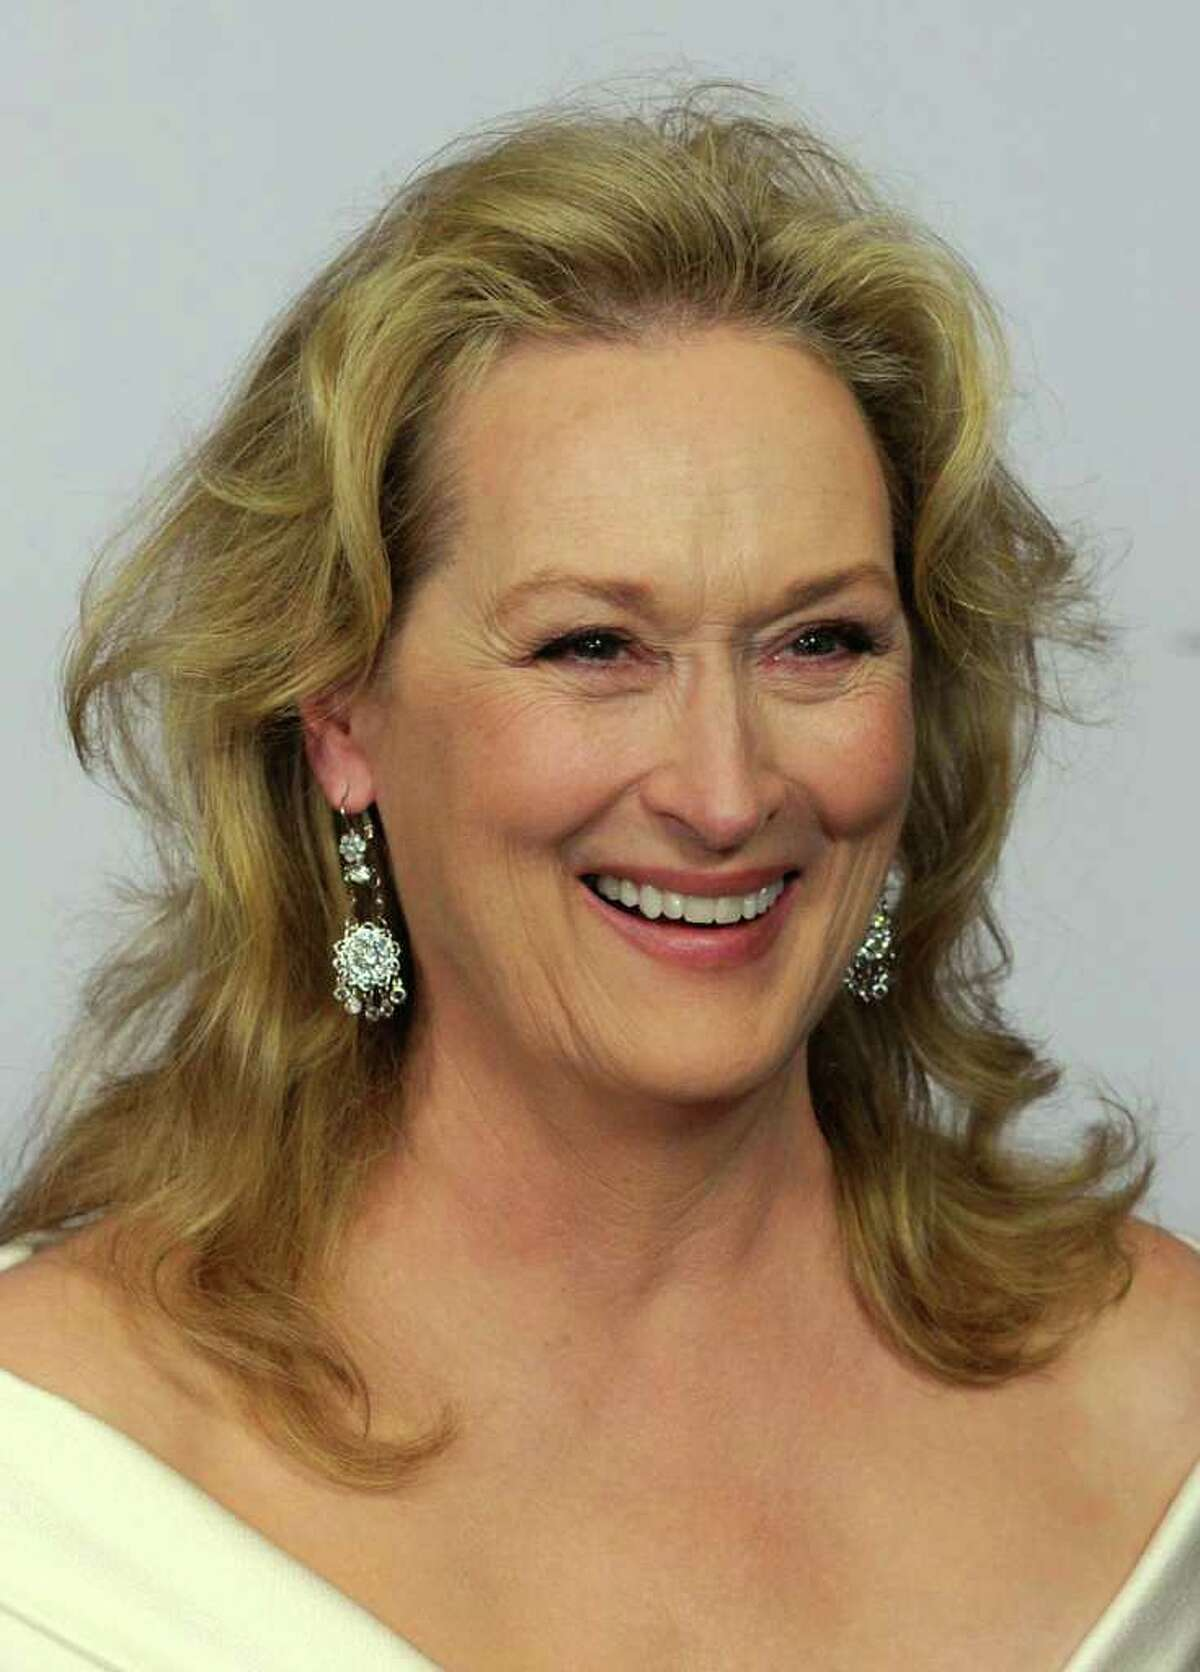 """Actress Meryl Streep attends the 38th AFI Life Achievement Award June 10, 2010 in Culver City, California. Streep, who is in town filming """"Great Hope Springs"""" with actors Tommy Lee Jones and Steve Carell, was seen having lunch at Beach House in Old Greenwich Friday afternoon. (Photo by Frazer Harrison/Getty Images for AFI)"""